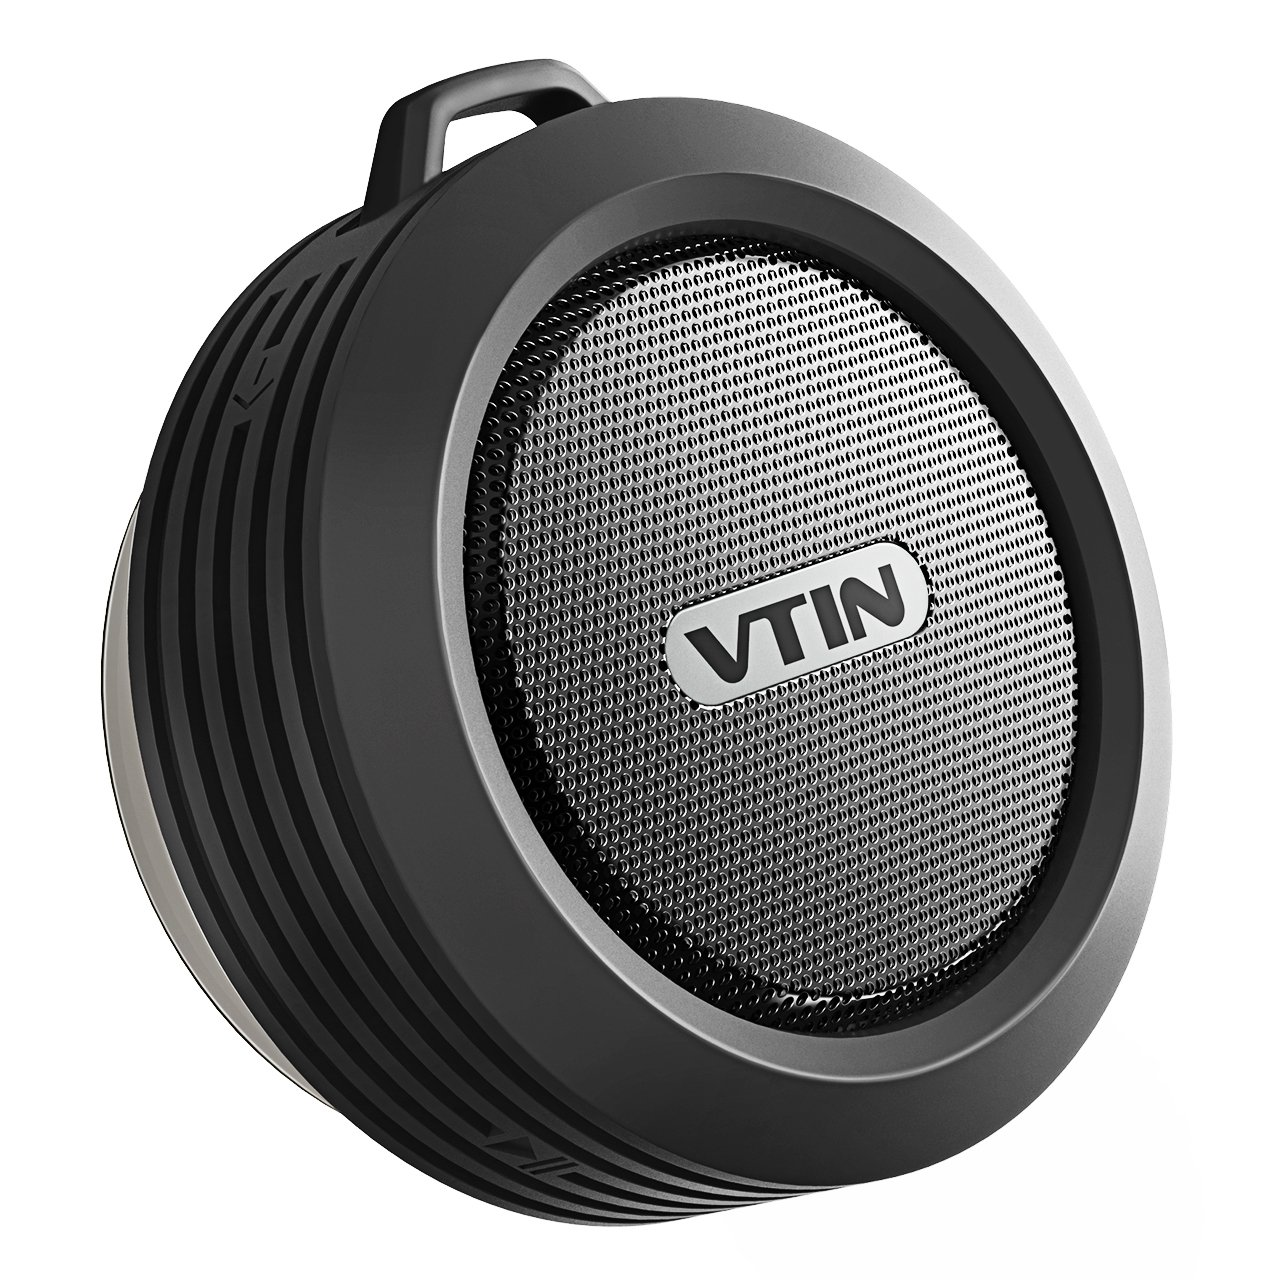 Vtin Shower Speaker with Bluetooth, Mini Waterproof Bluetooth Speaker, Hands-Free Speaker with Suction Cup, Built-in Mic